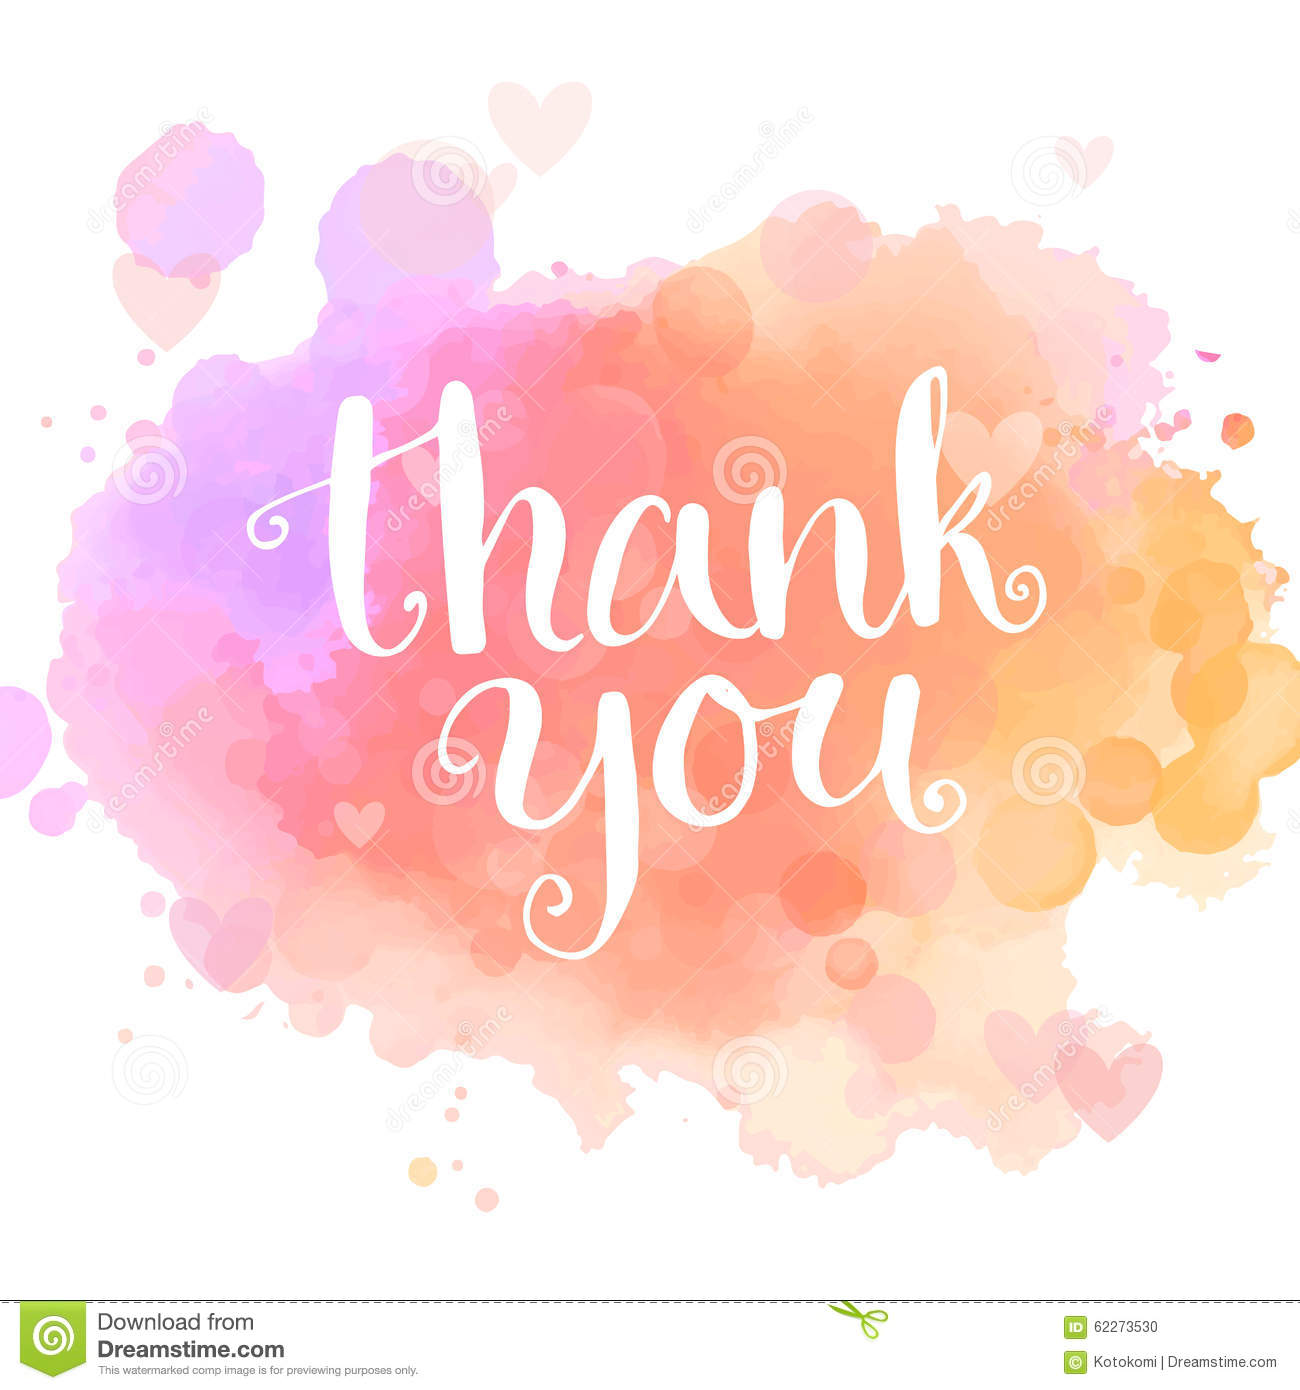 Thank You Card. Handwritten White Phrase On Pink Stock Vector - Image ...